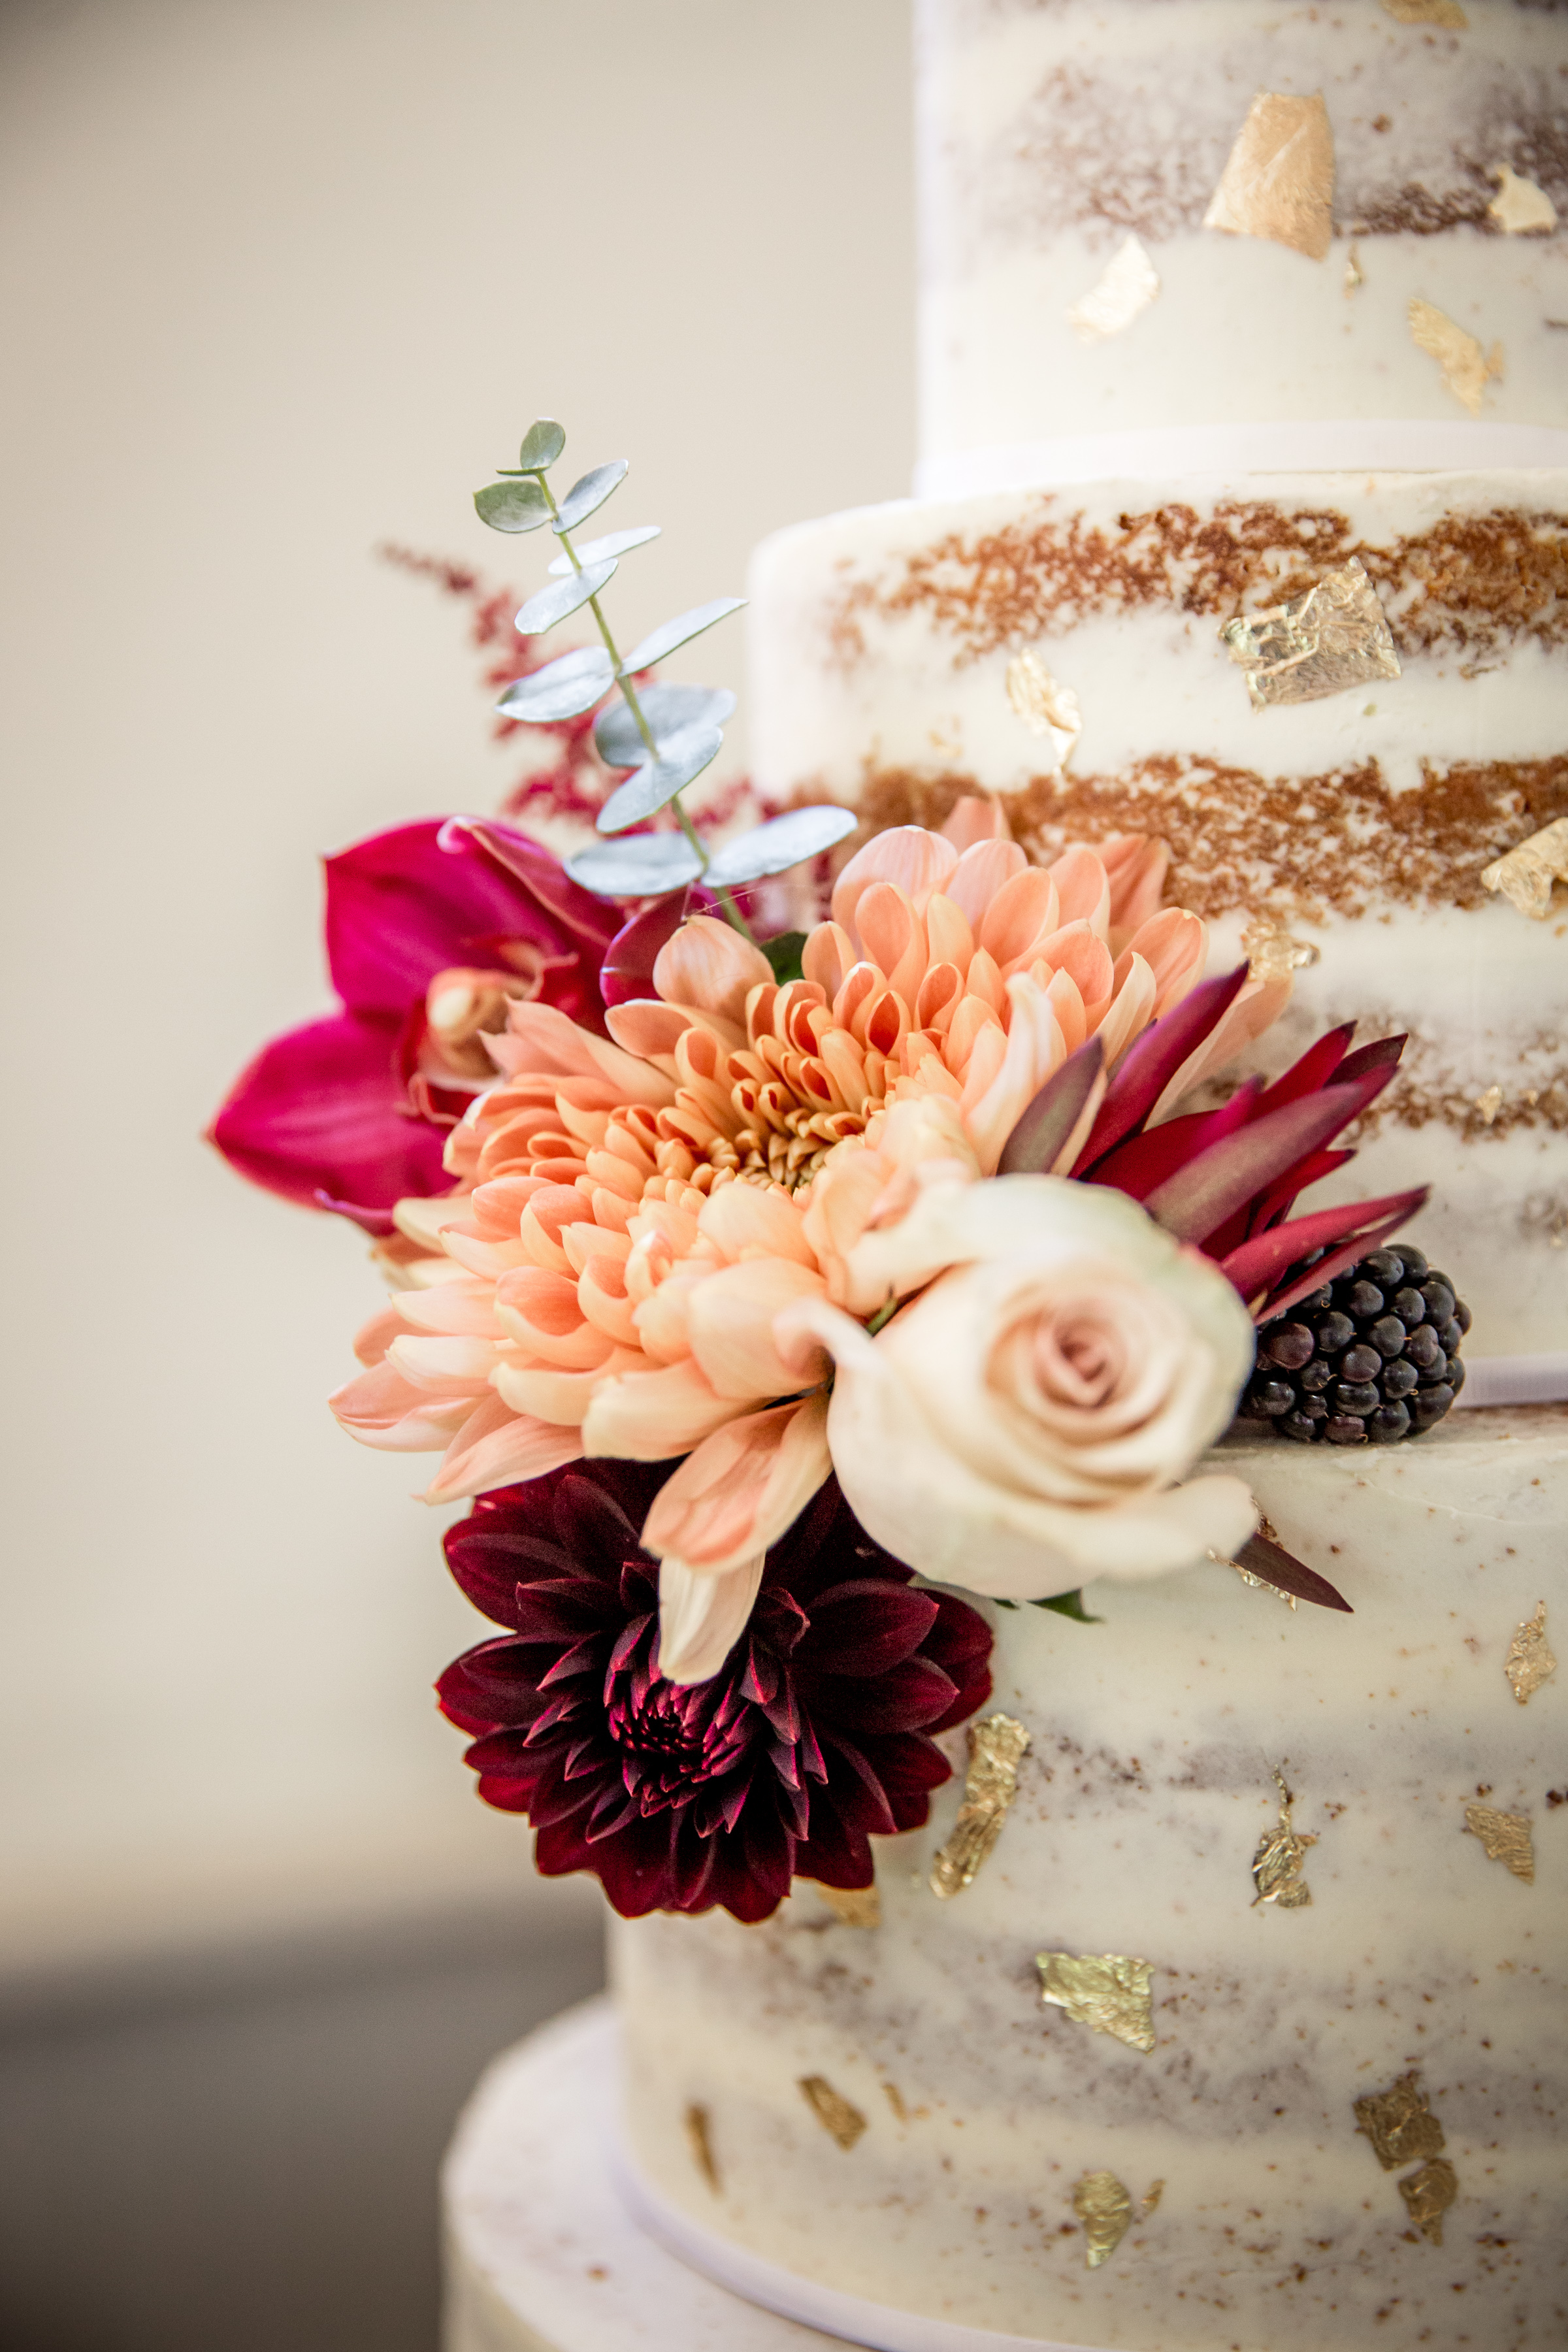 Dorset wedding cake maker